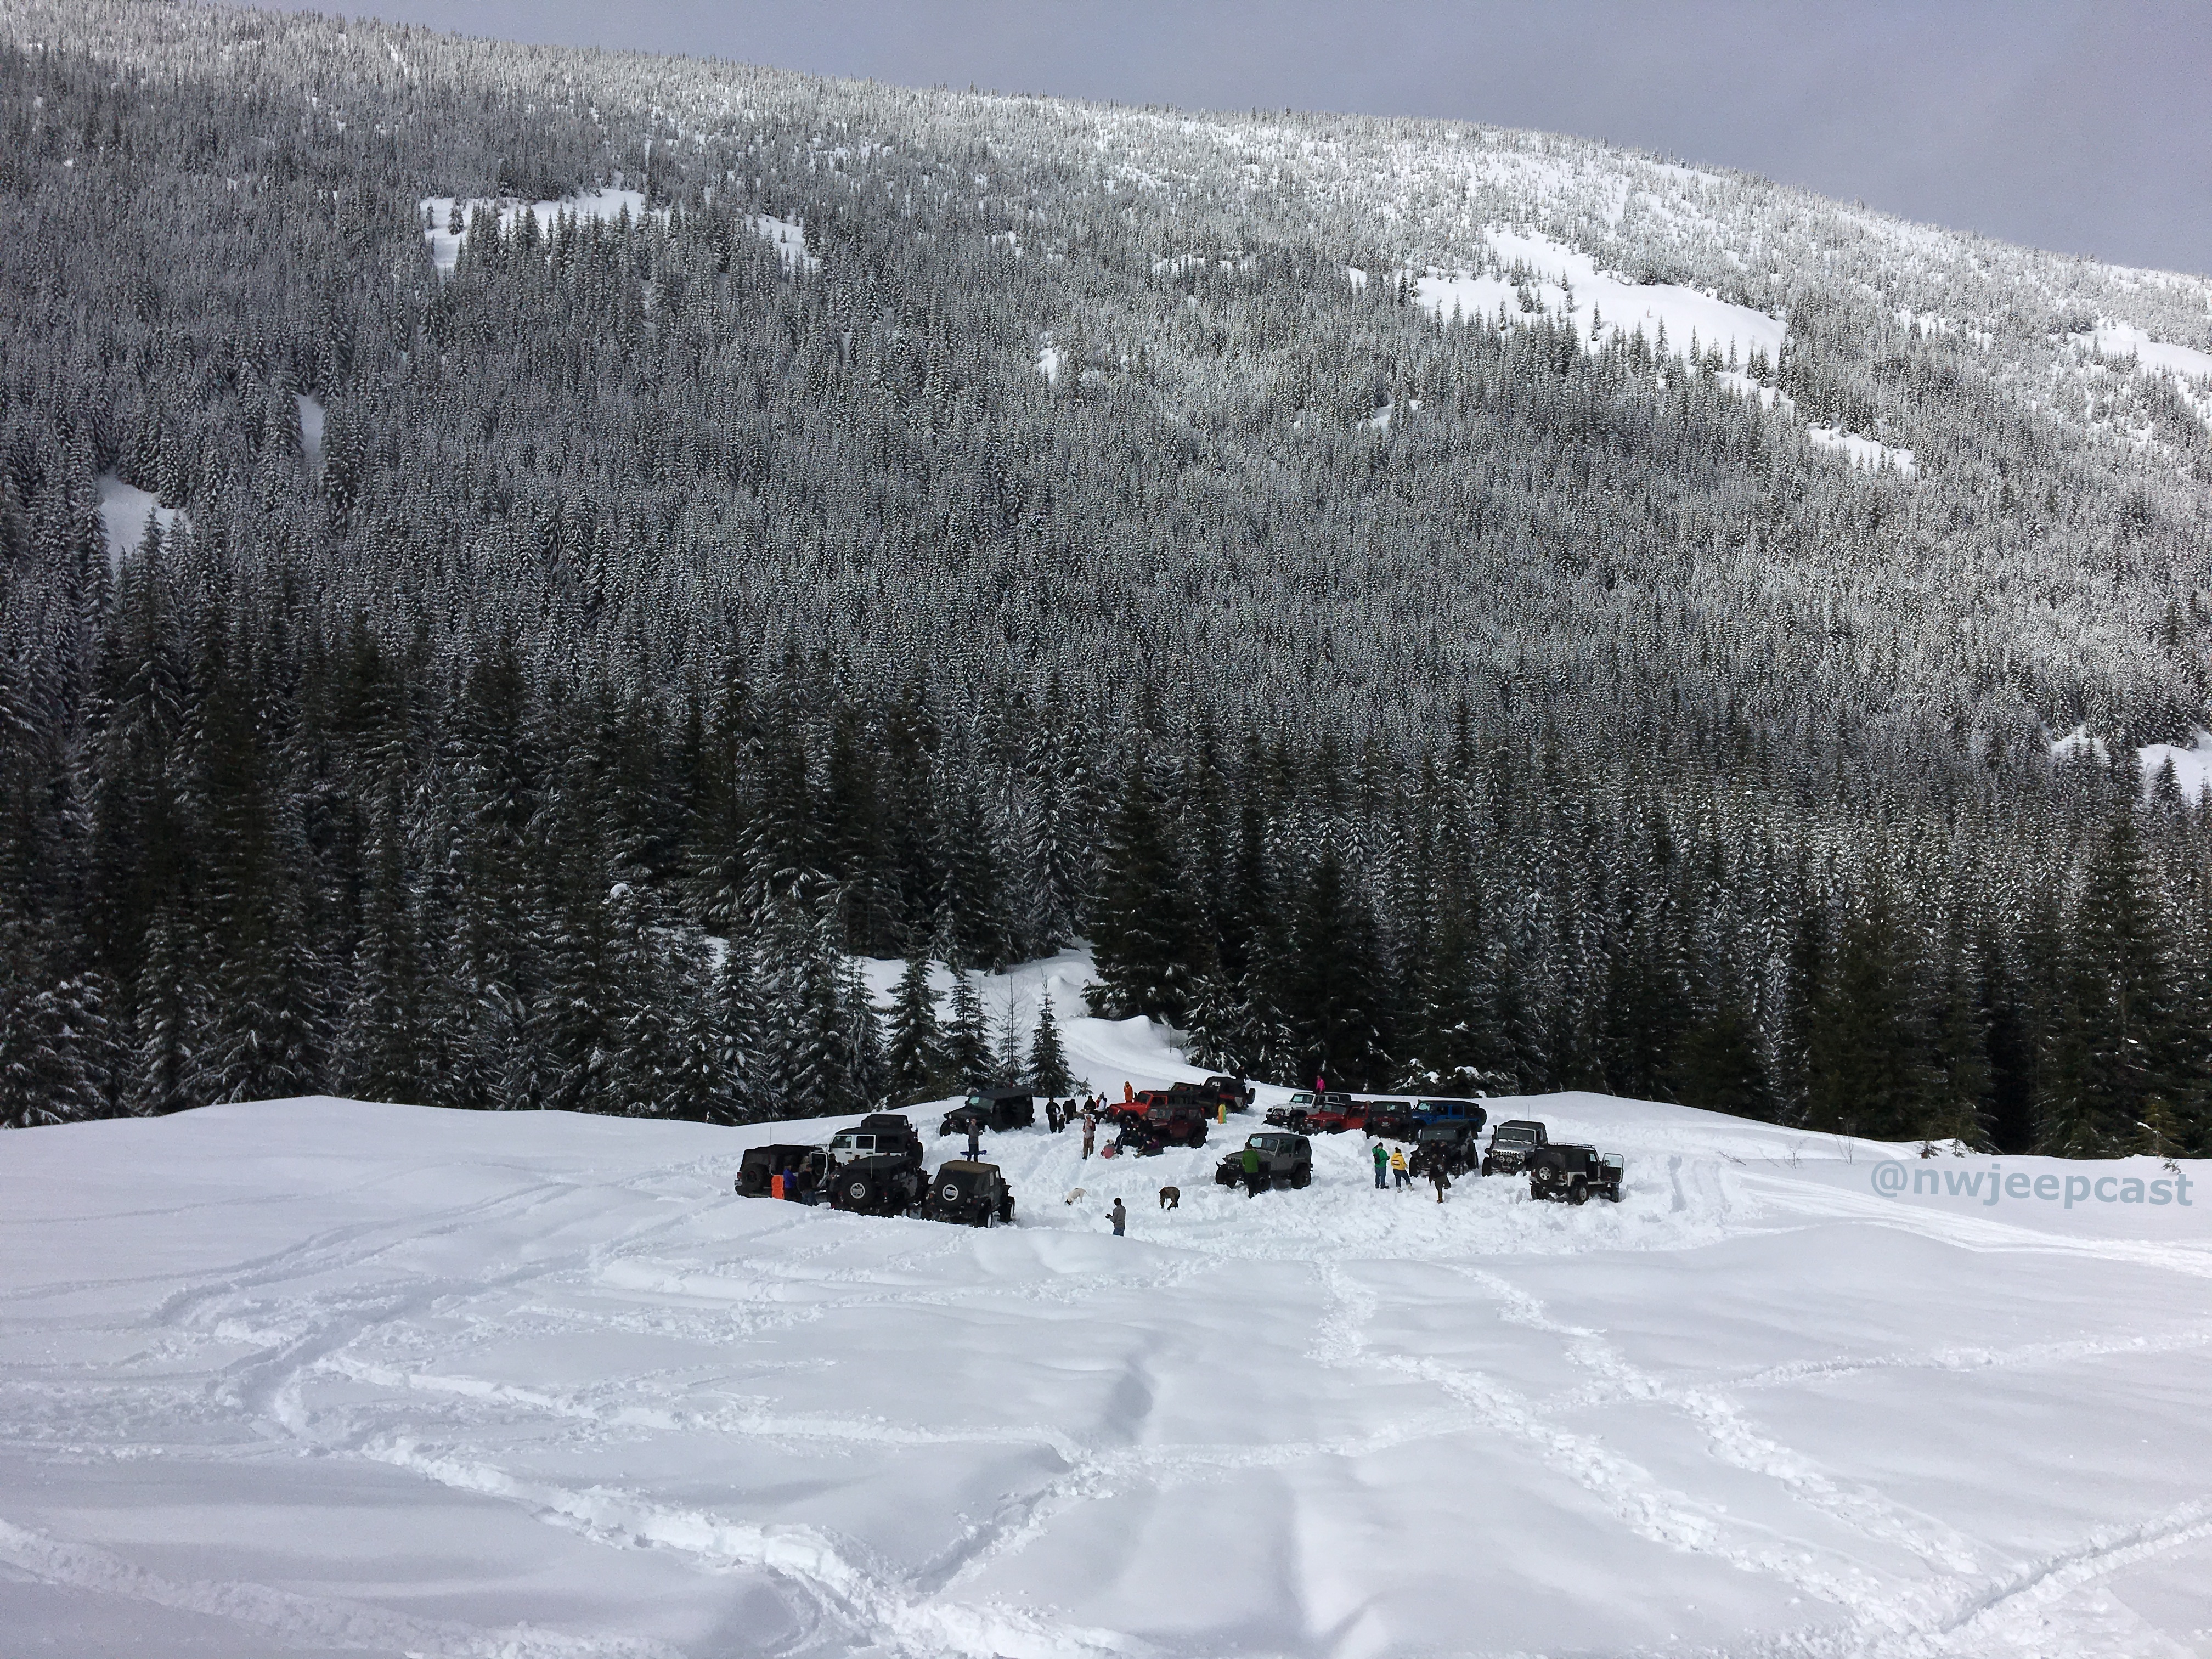 Listener Snow Group - Northwest Jeepcast - A Jeep Podcast